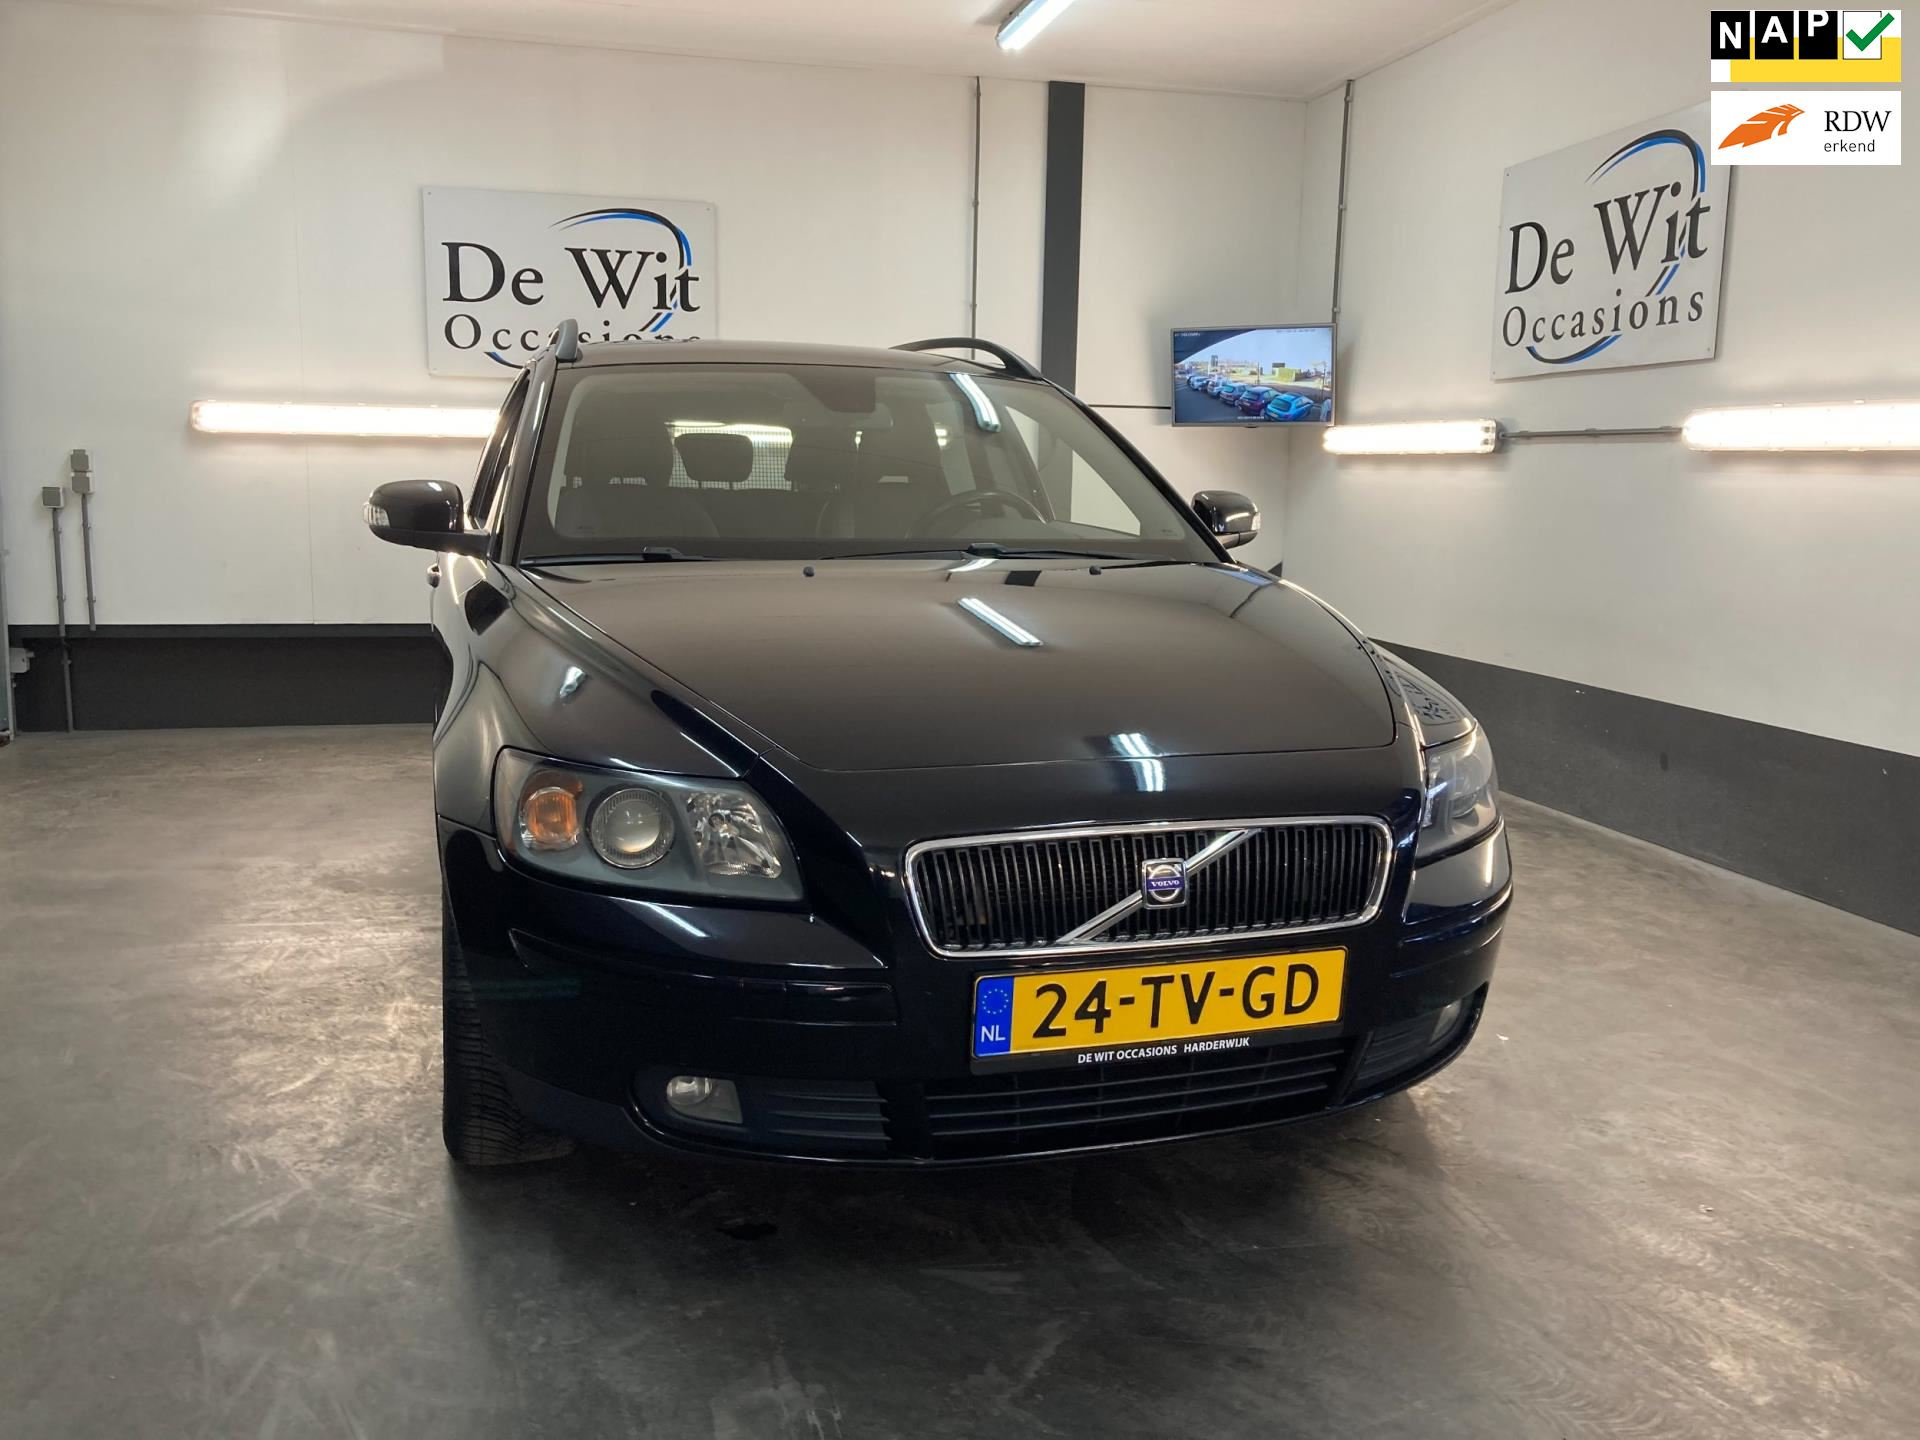 Volvo V50 occasion - De Wit Occasions